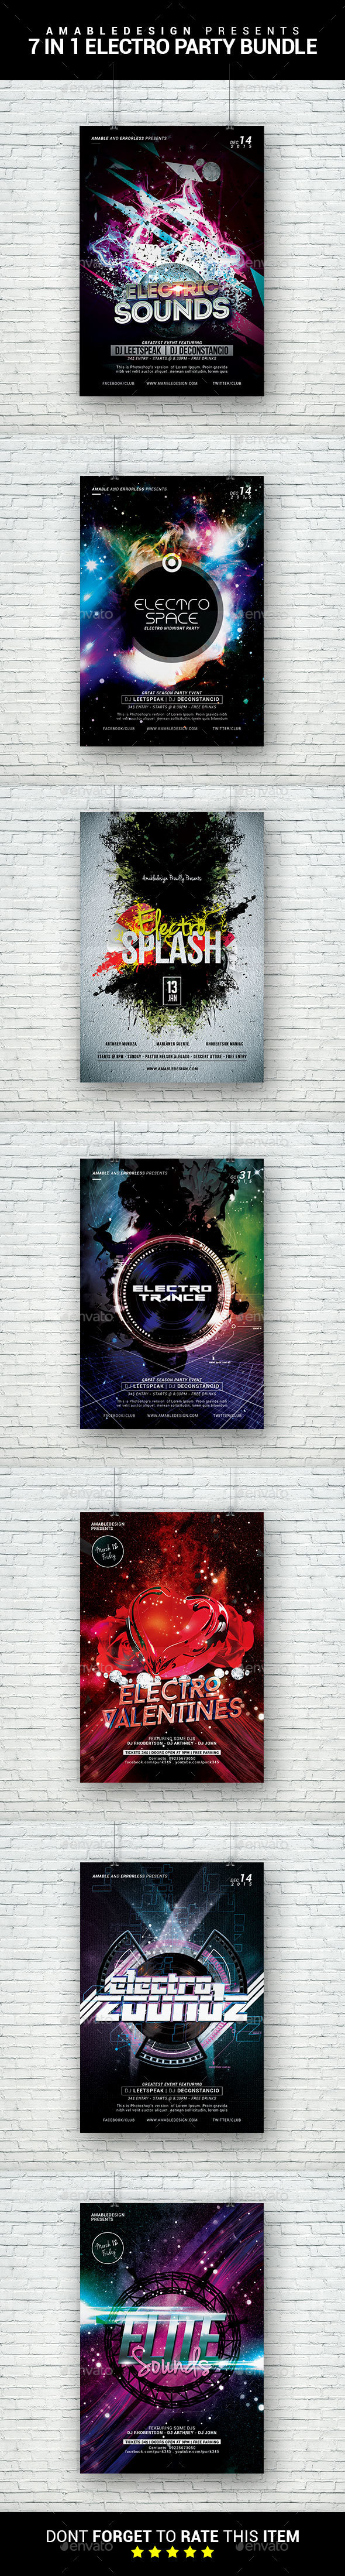 7 in 1 Electro Flyer/Poster Bundle - Clubs & Parties Events